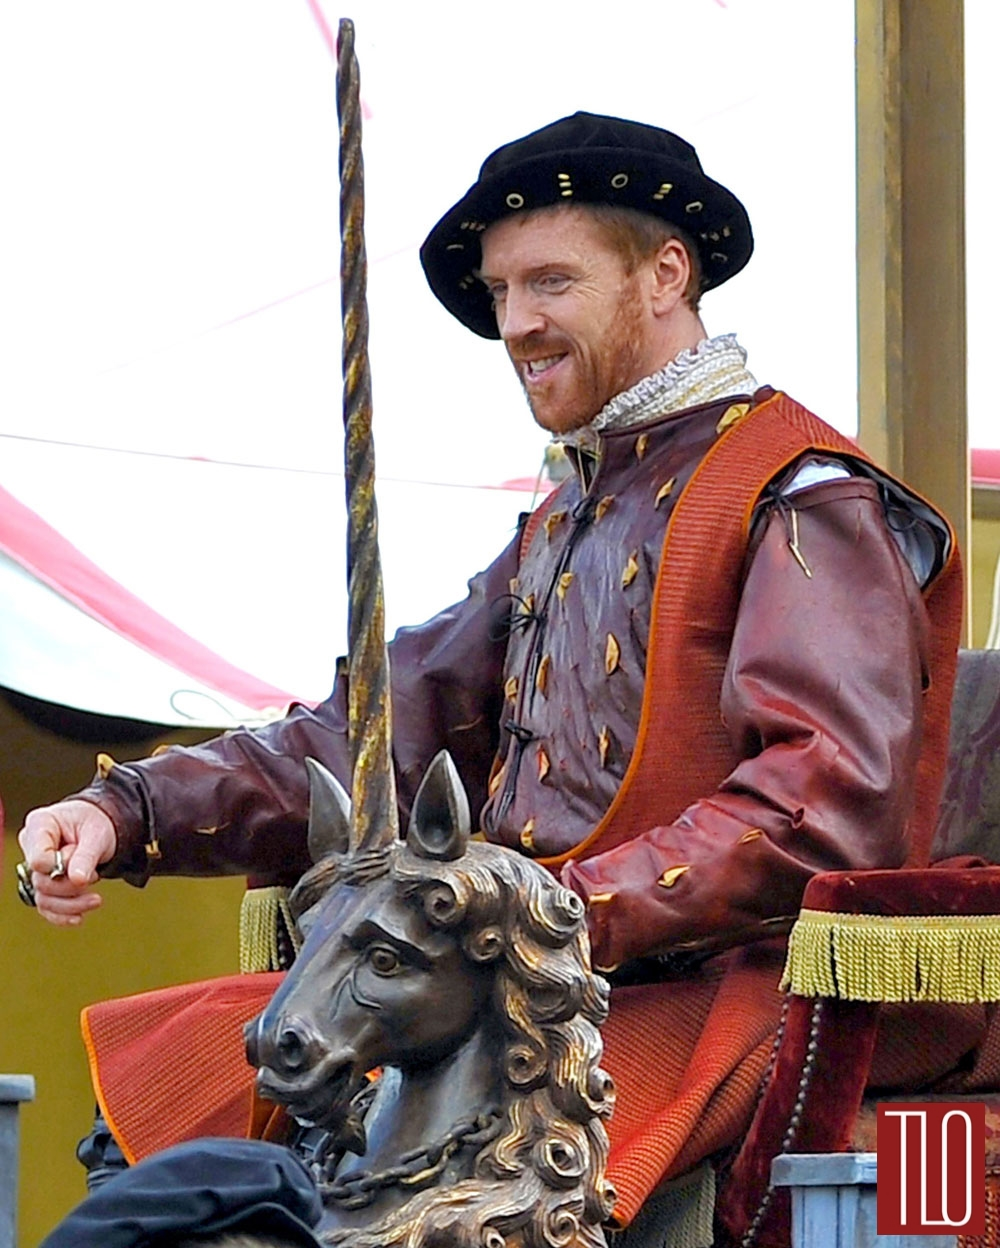 Damian-Lewis-BBC-Wlf-Hall-On-Set-Henry-VIII-Tom-Lorenzo-Site-TLO (1)